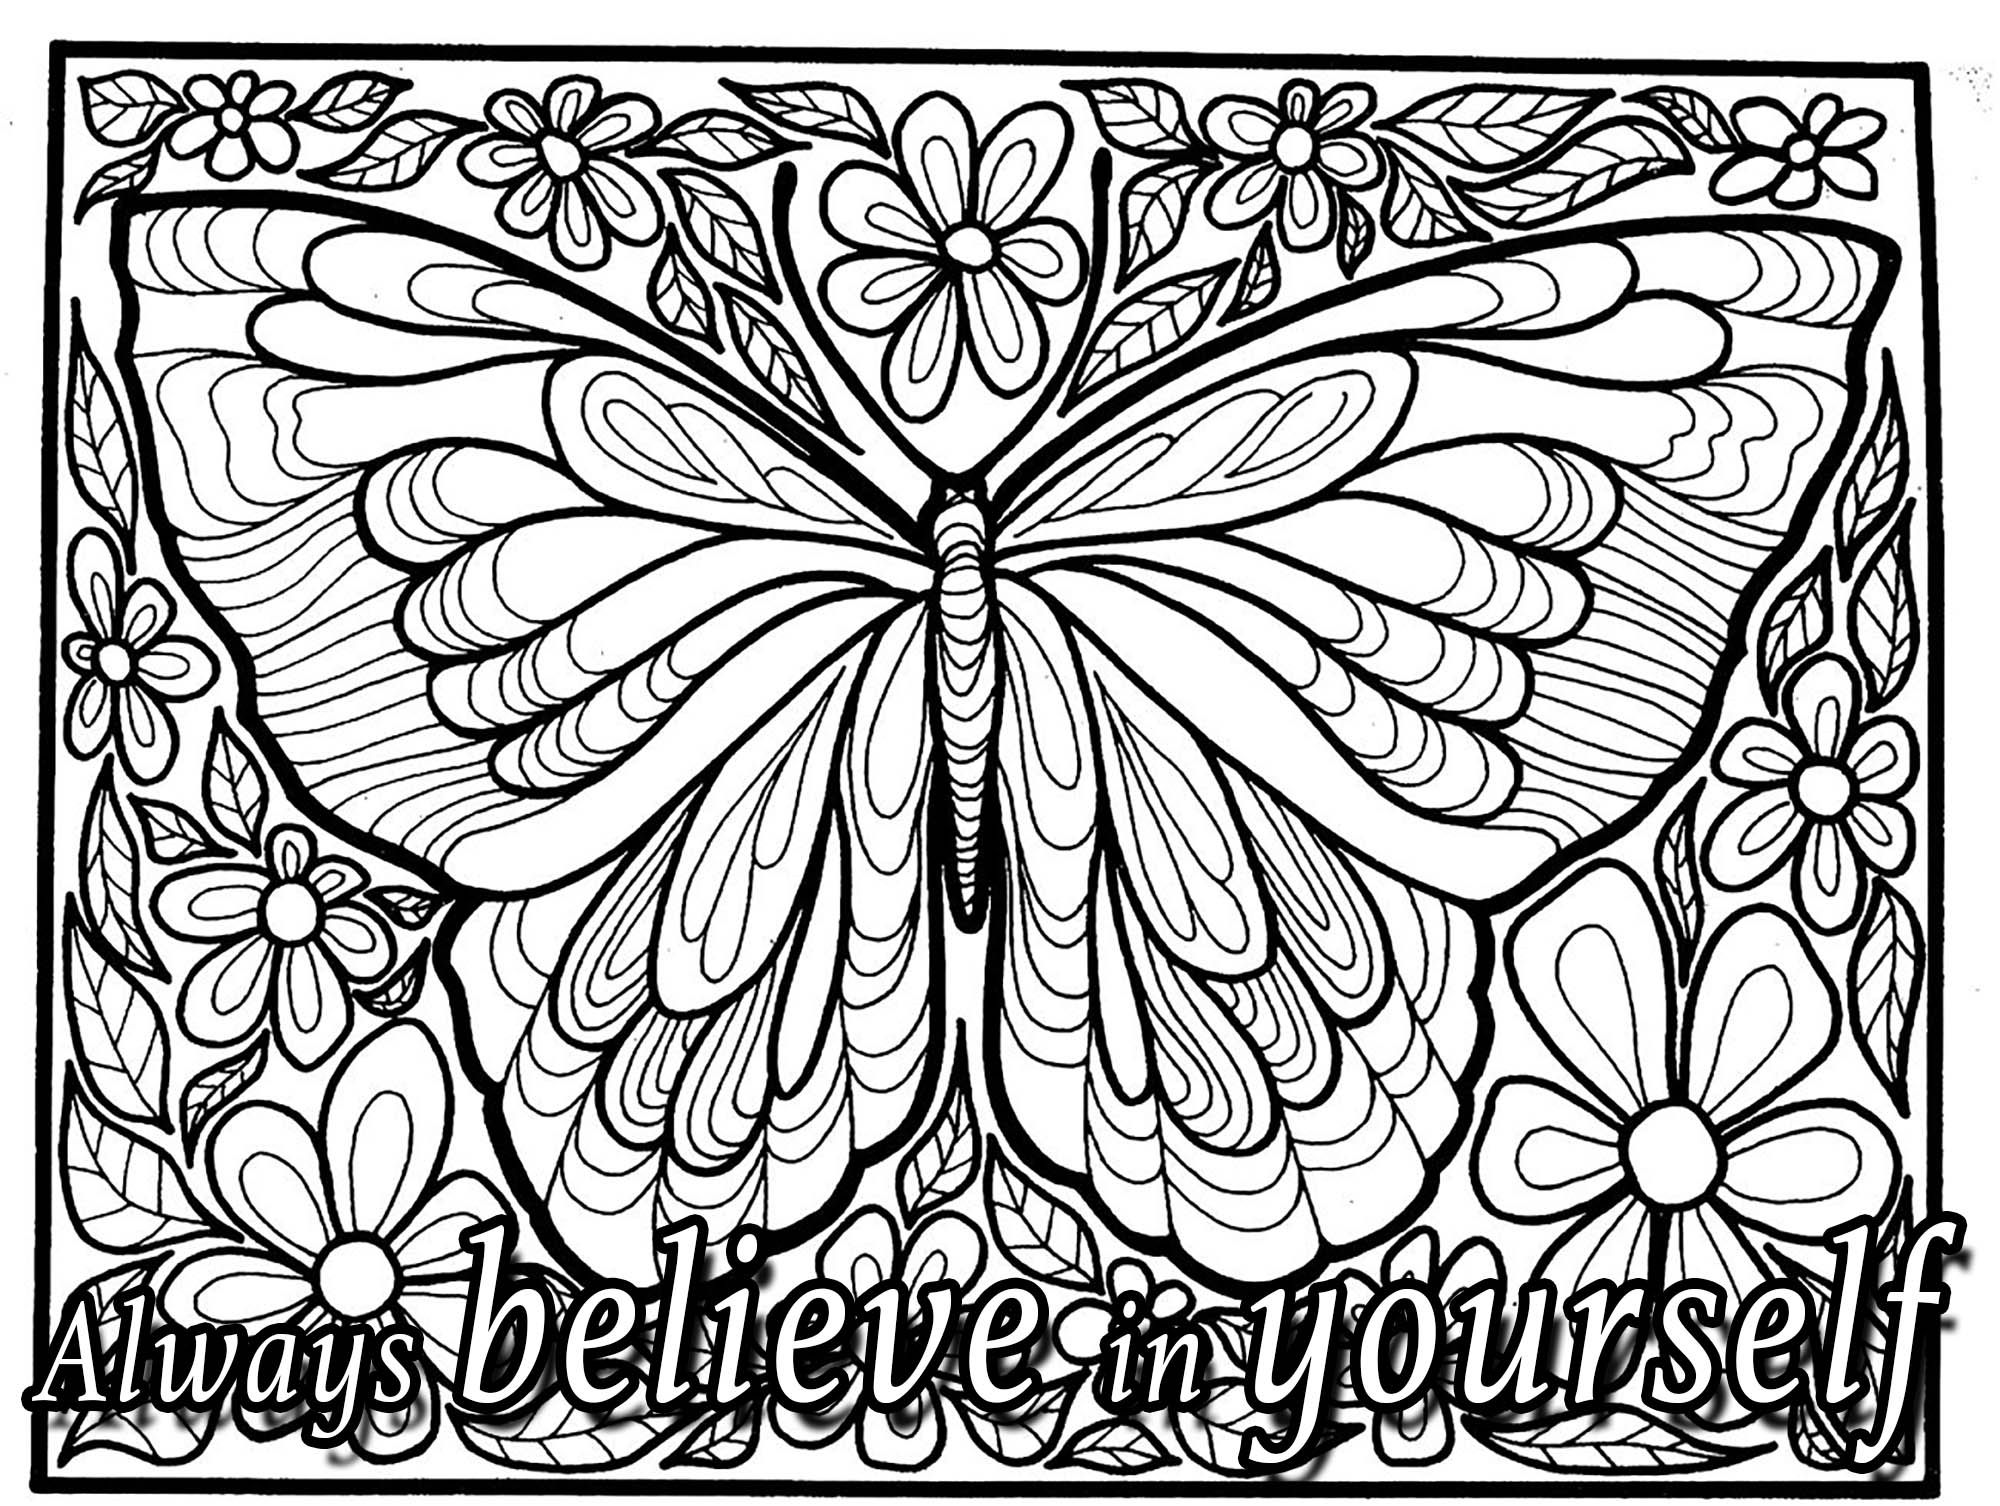 Relax Yourself With Our Inspiring Quote Coloring Pages